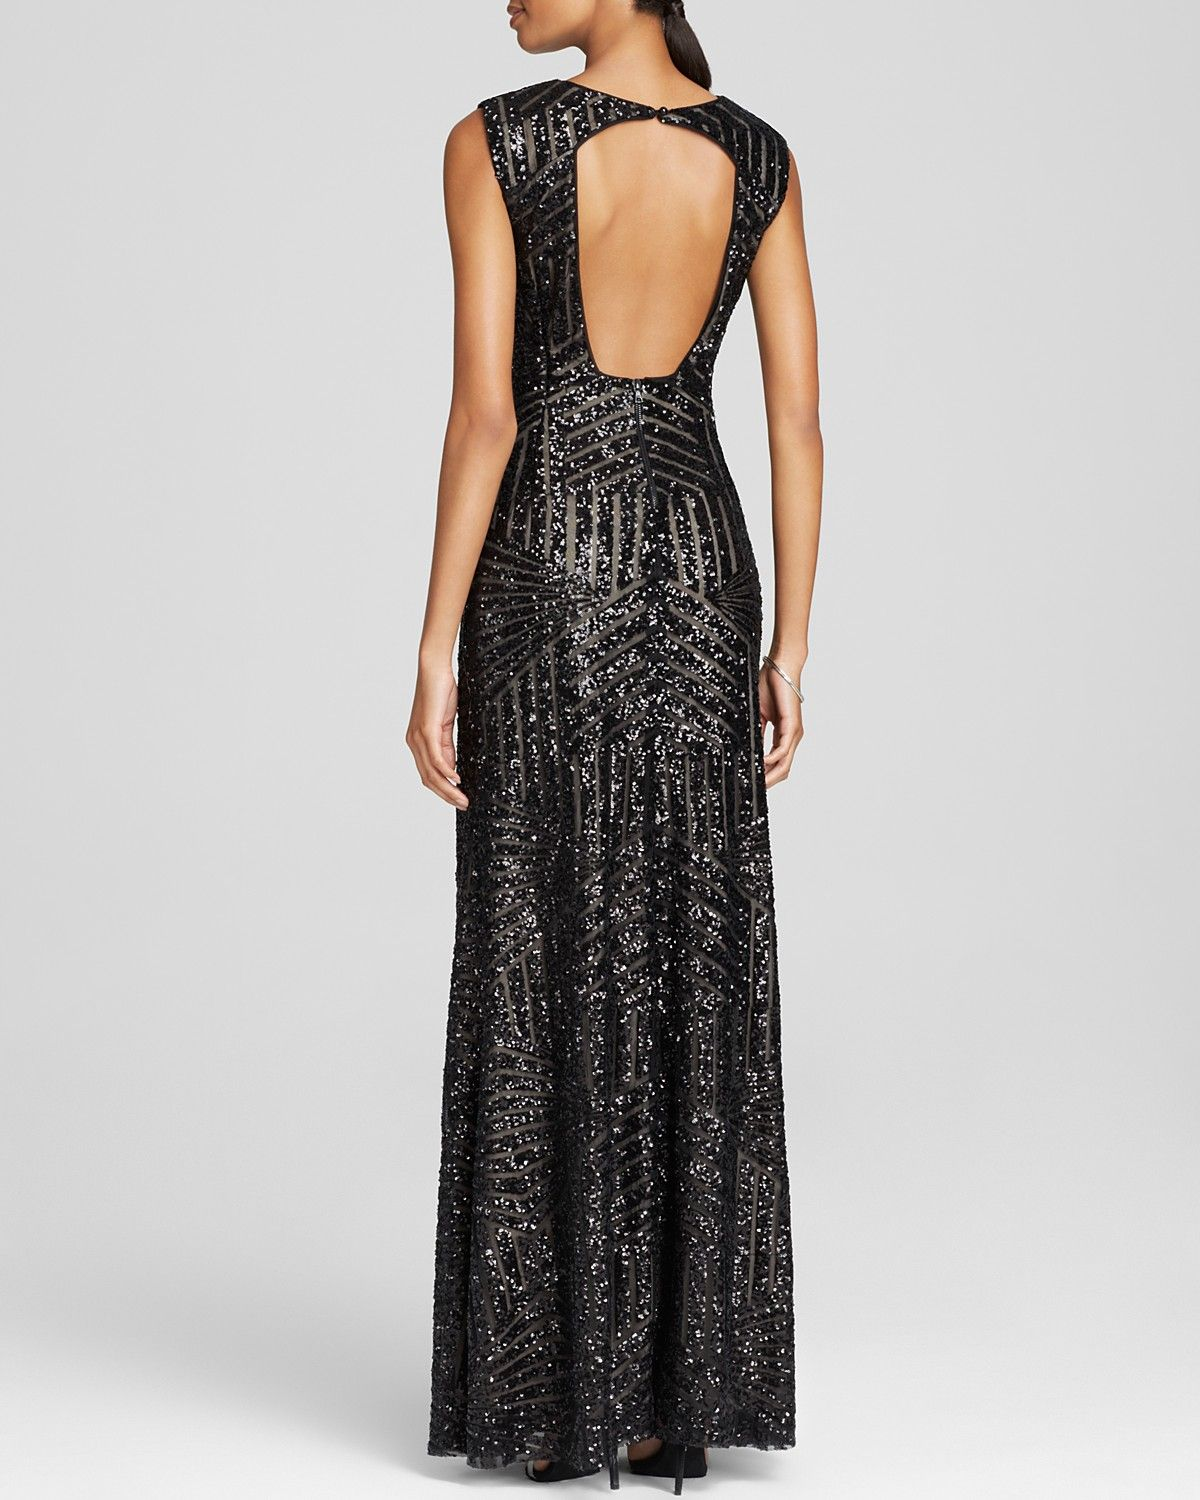 Vera Wang Sleeveless Sequin Embellished Gown - Bloomingdale\'s ...